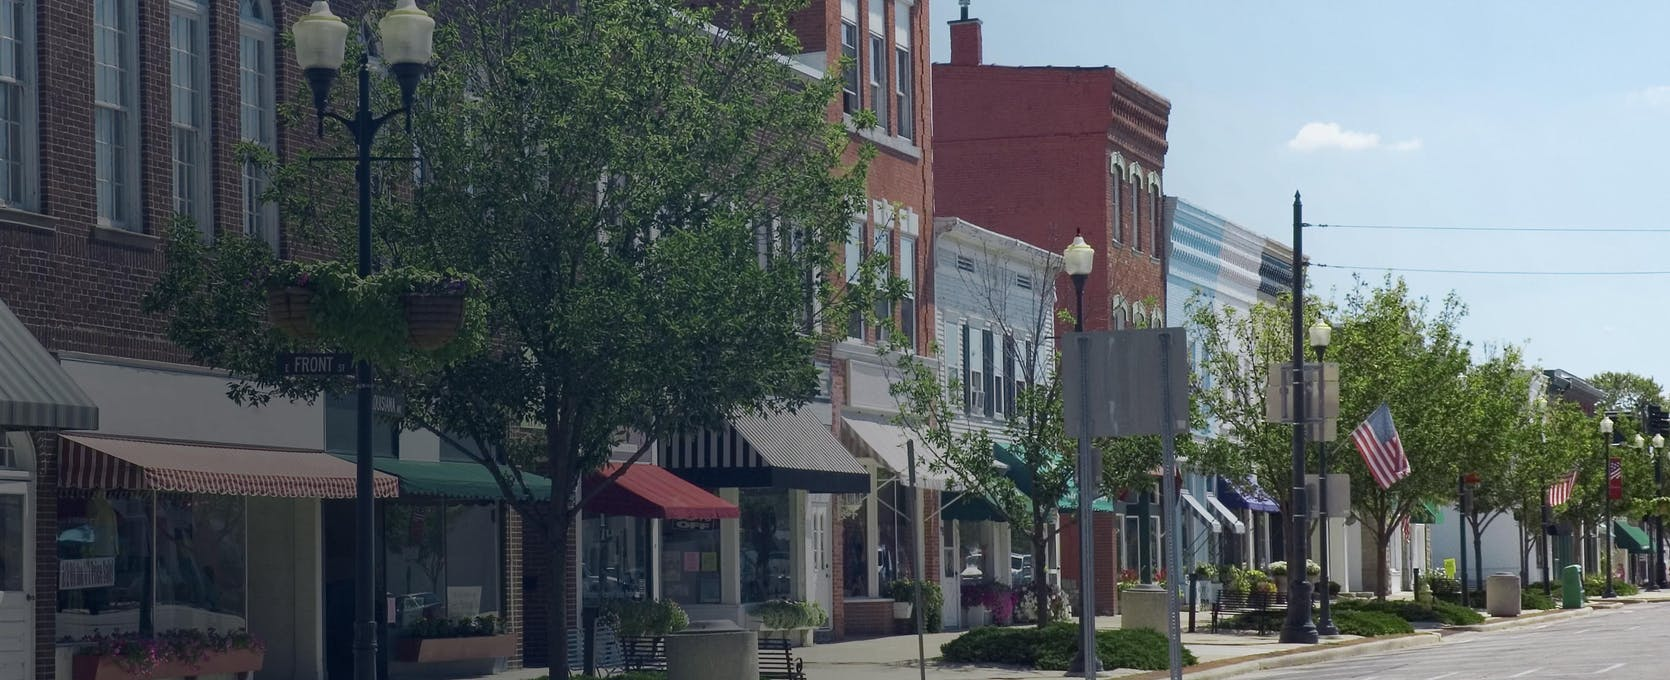 Tree-lined street represents Main Street America